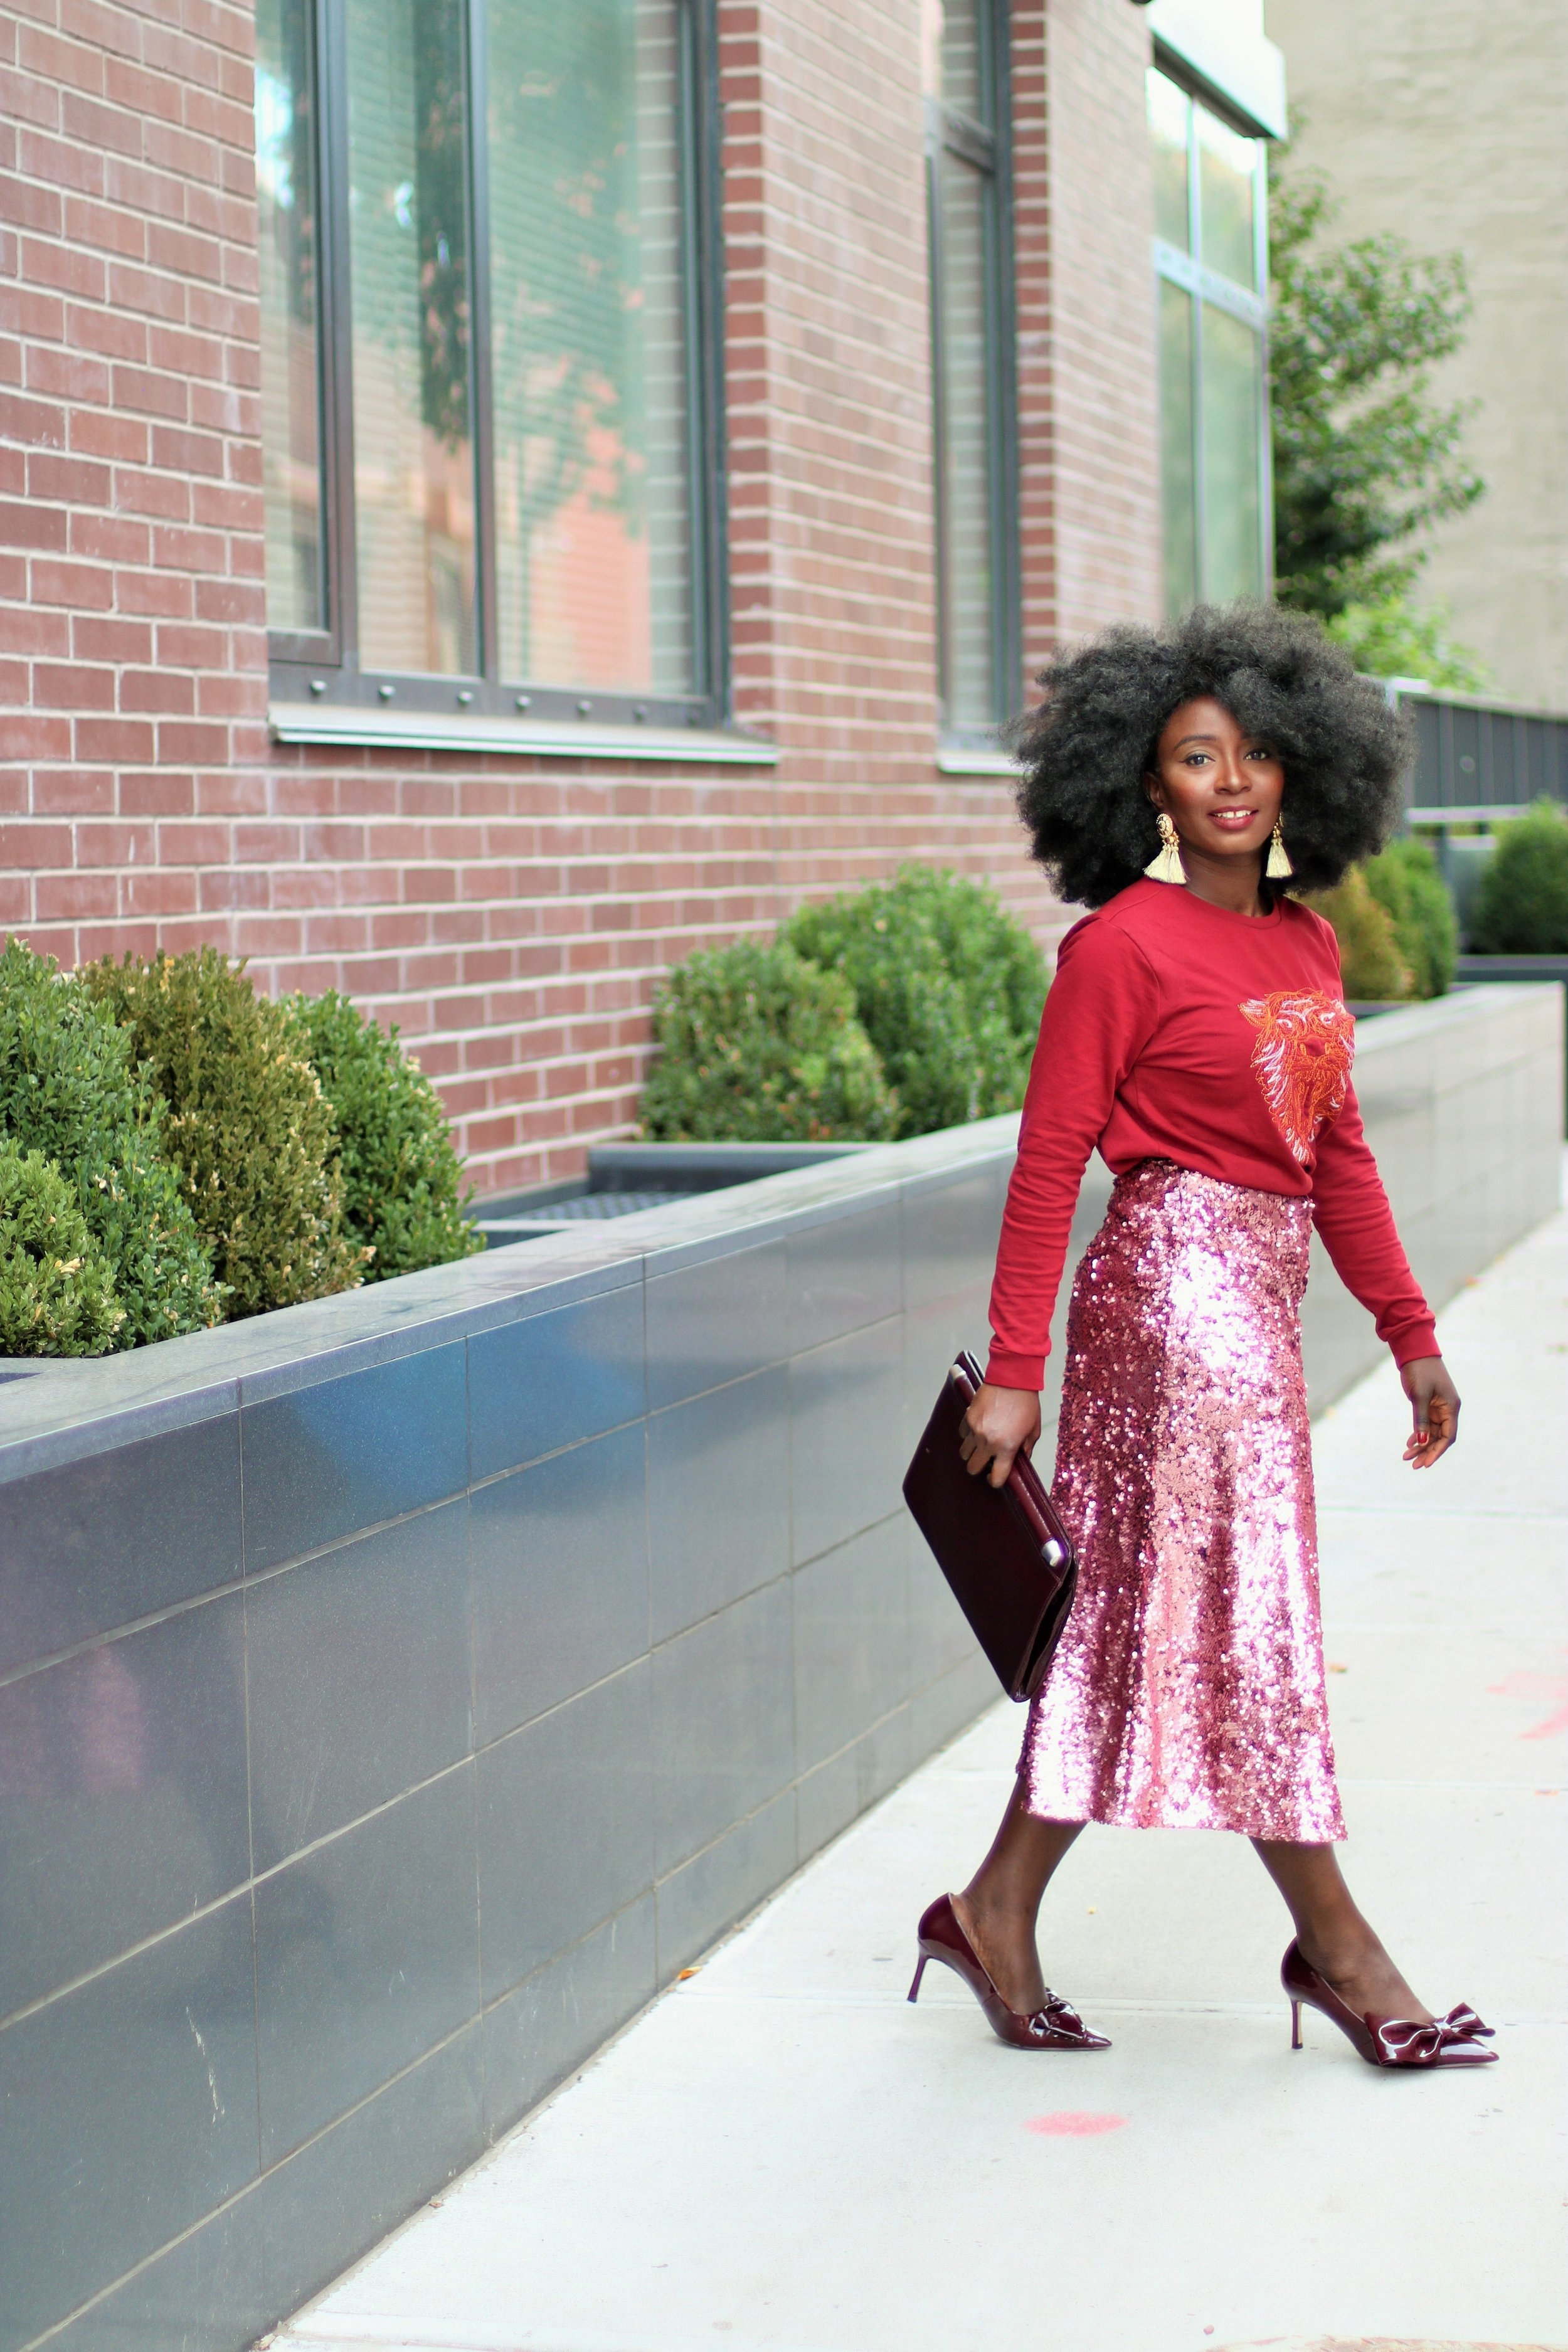 Graphic-Sweatshirt-And-Sequins-Skirt-Outfit-Ideas